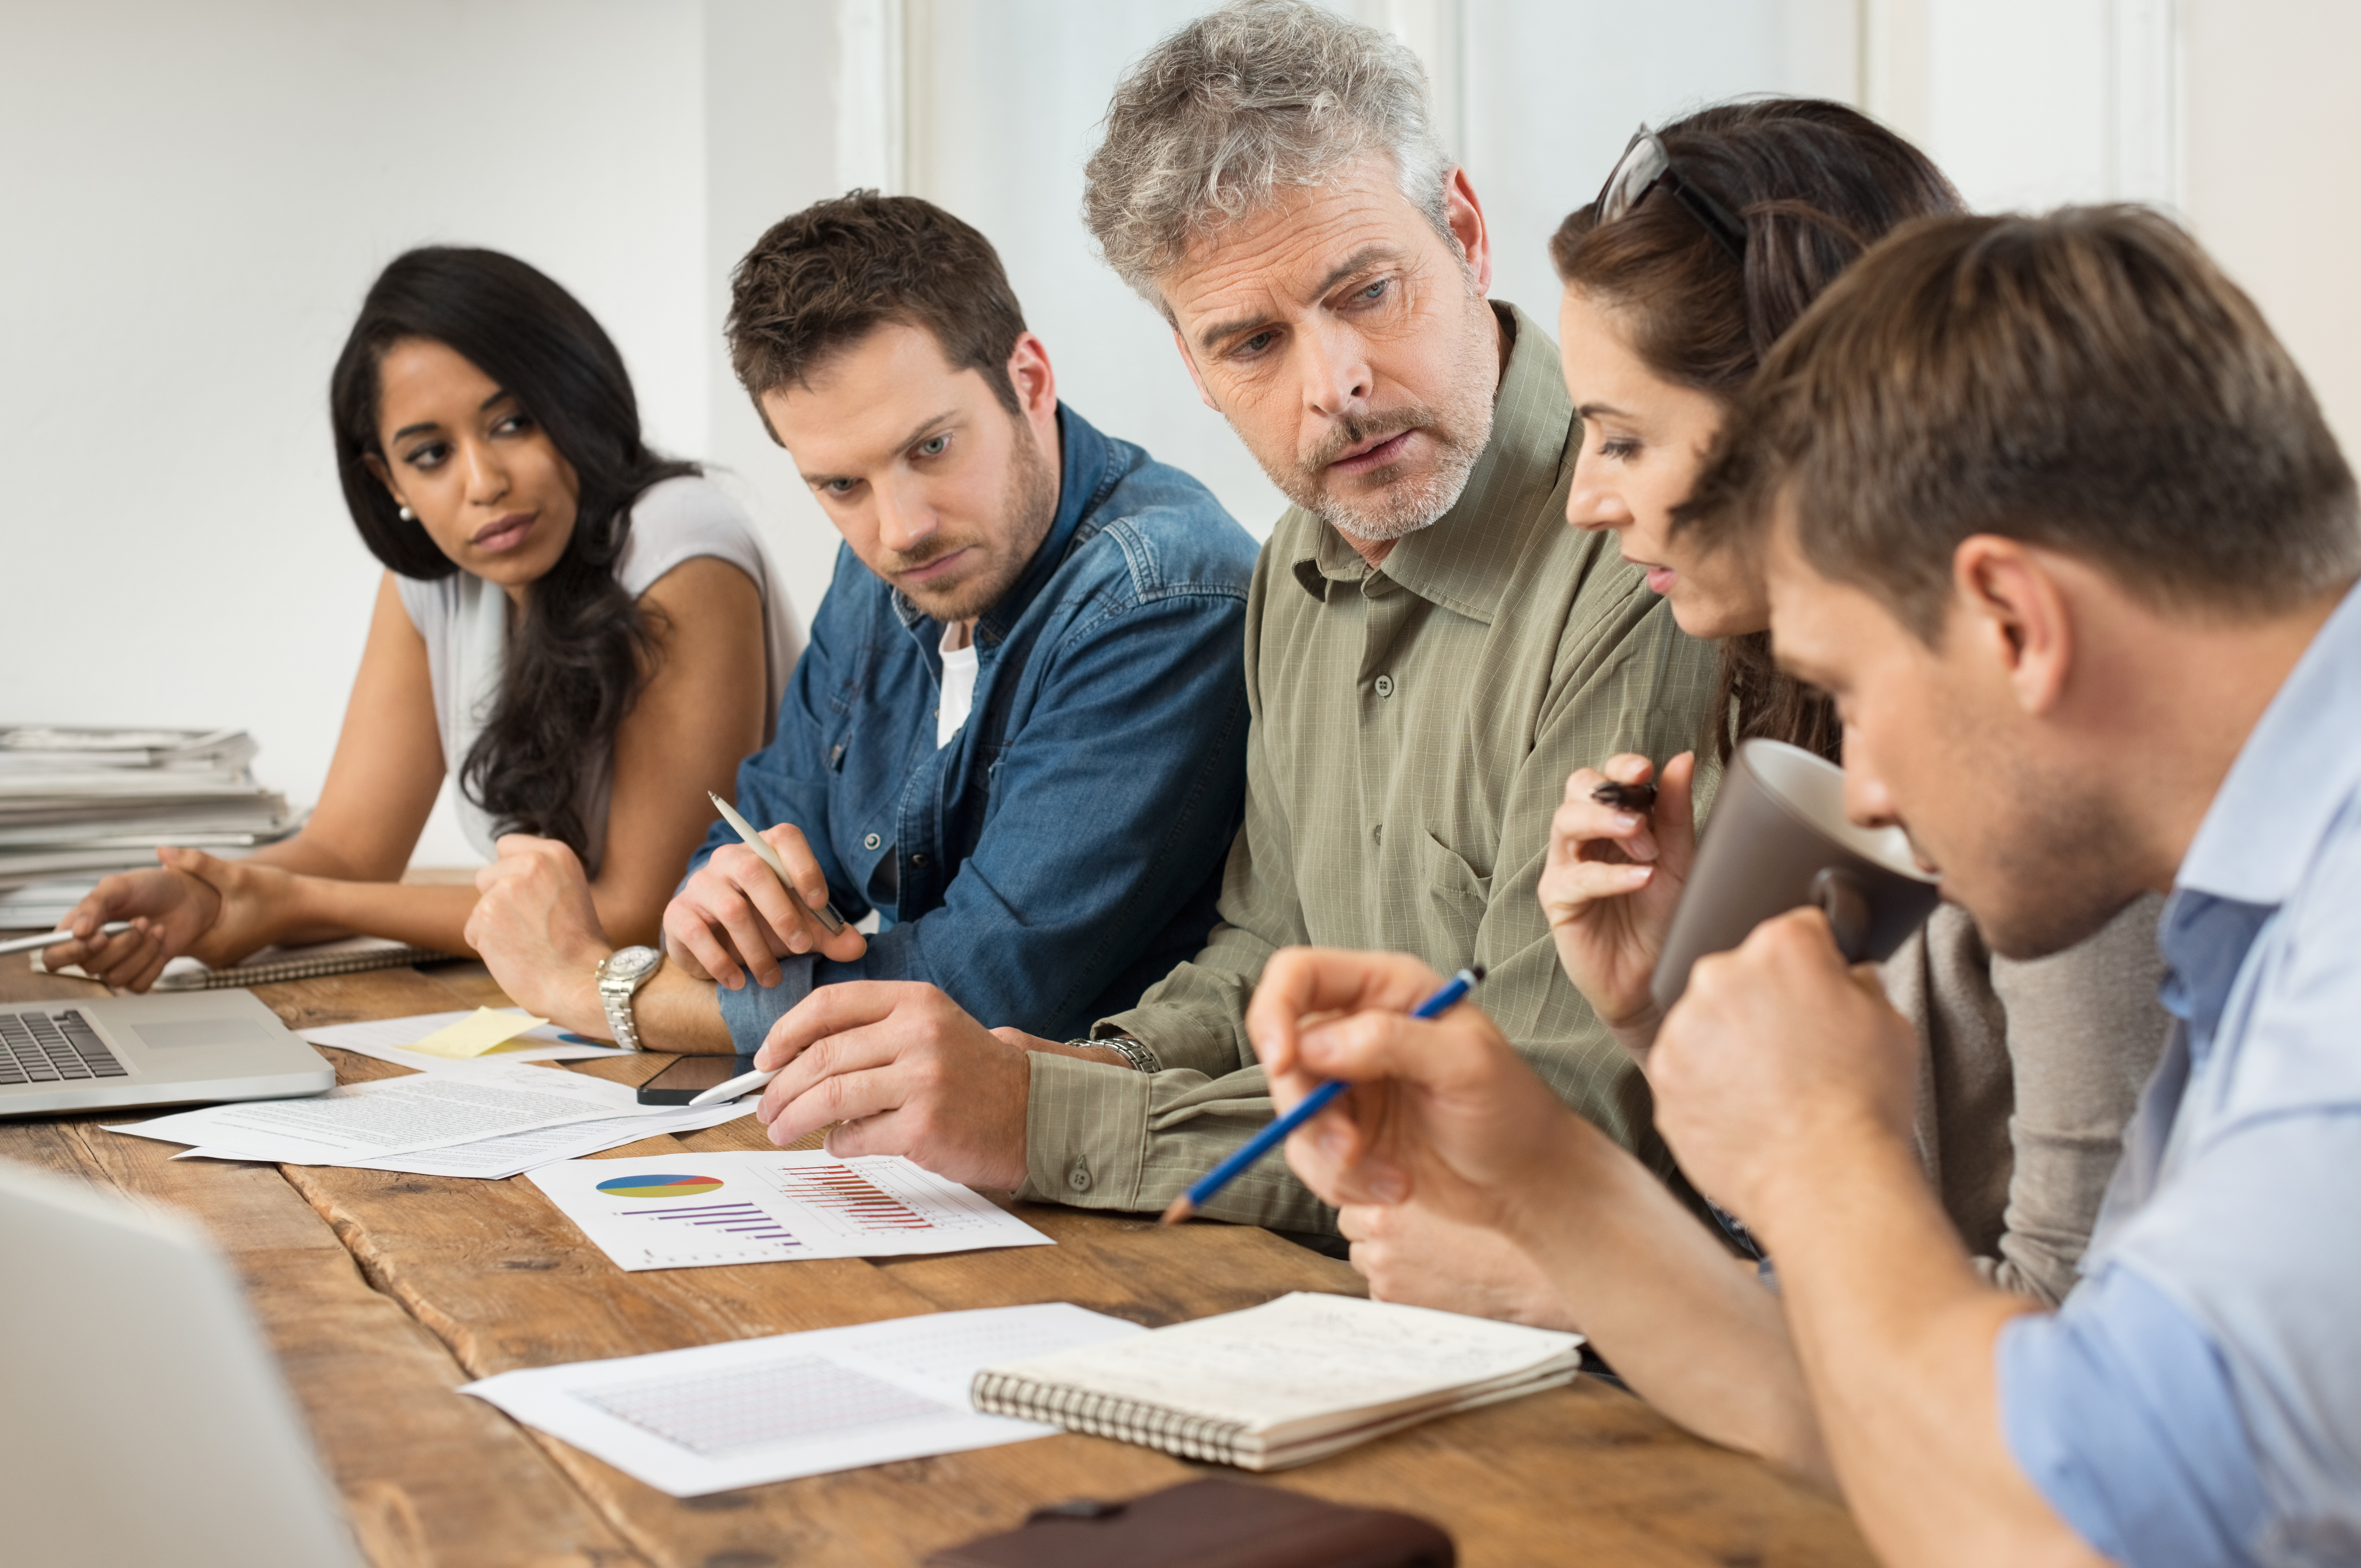 office meeting pictures. Businessman And Woman Discussing On Stockmarket Documents In Office. Team Of Business People Working Together Paperwork. Office Meeting Businesspeople Pictures